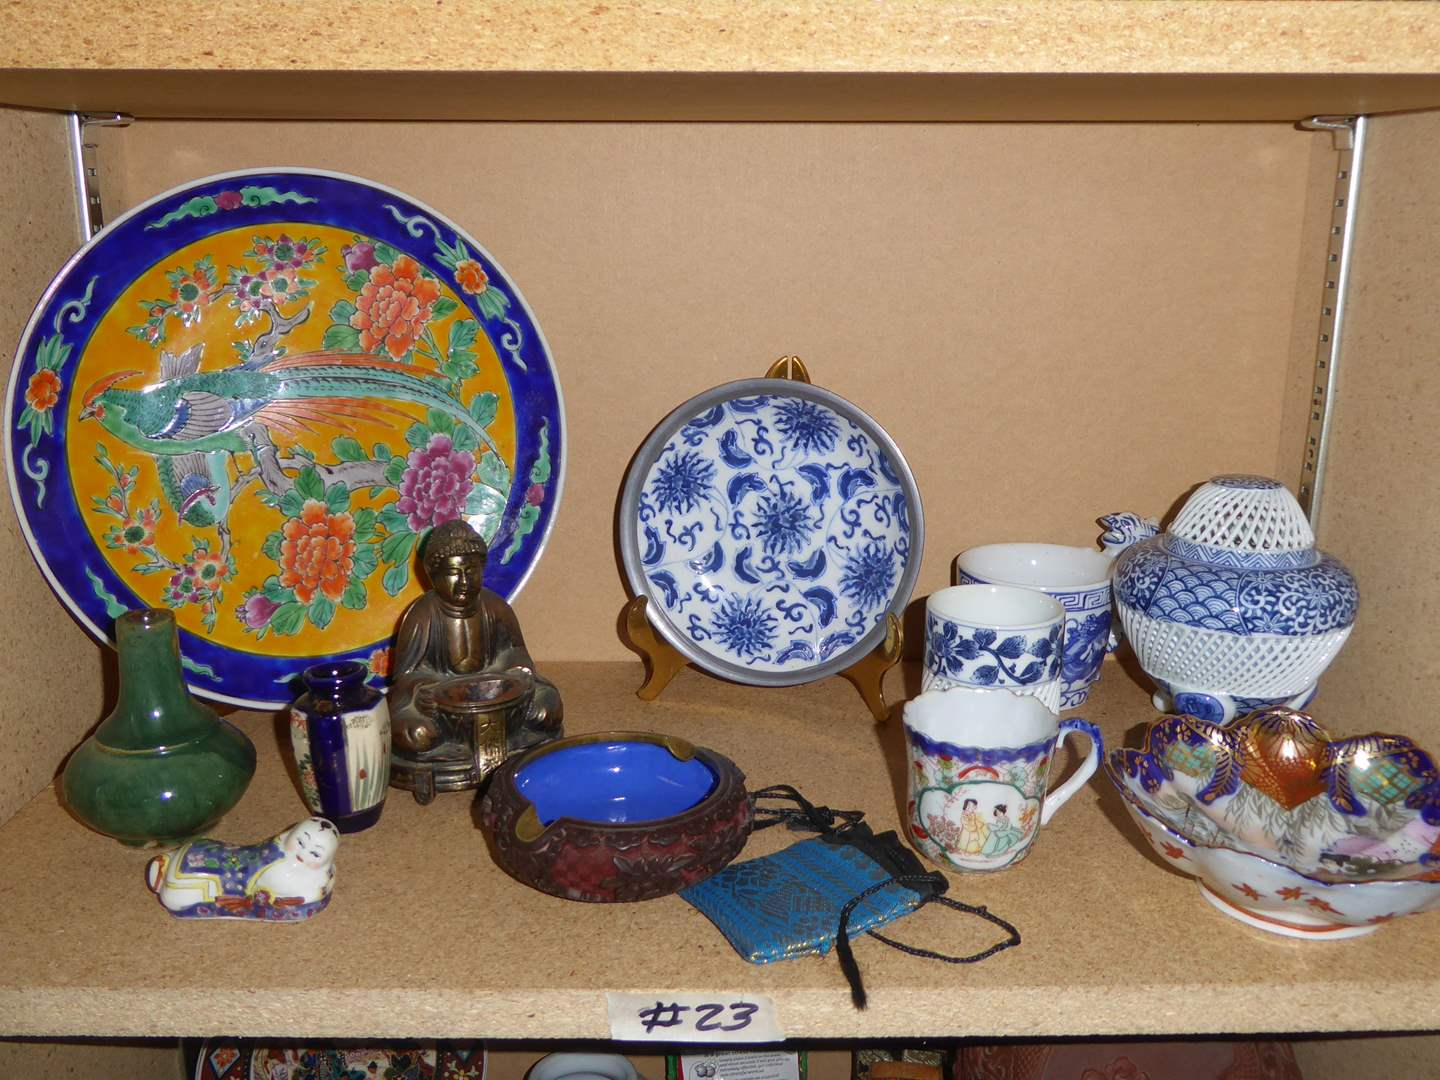 Lot # 23 - Woven Blue & White Porcelain, Decorative Plates & Vases (main image)